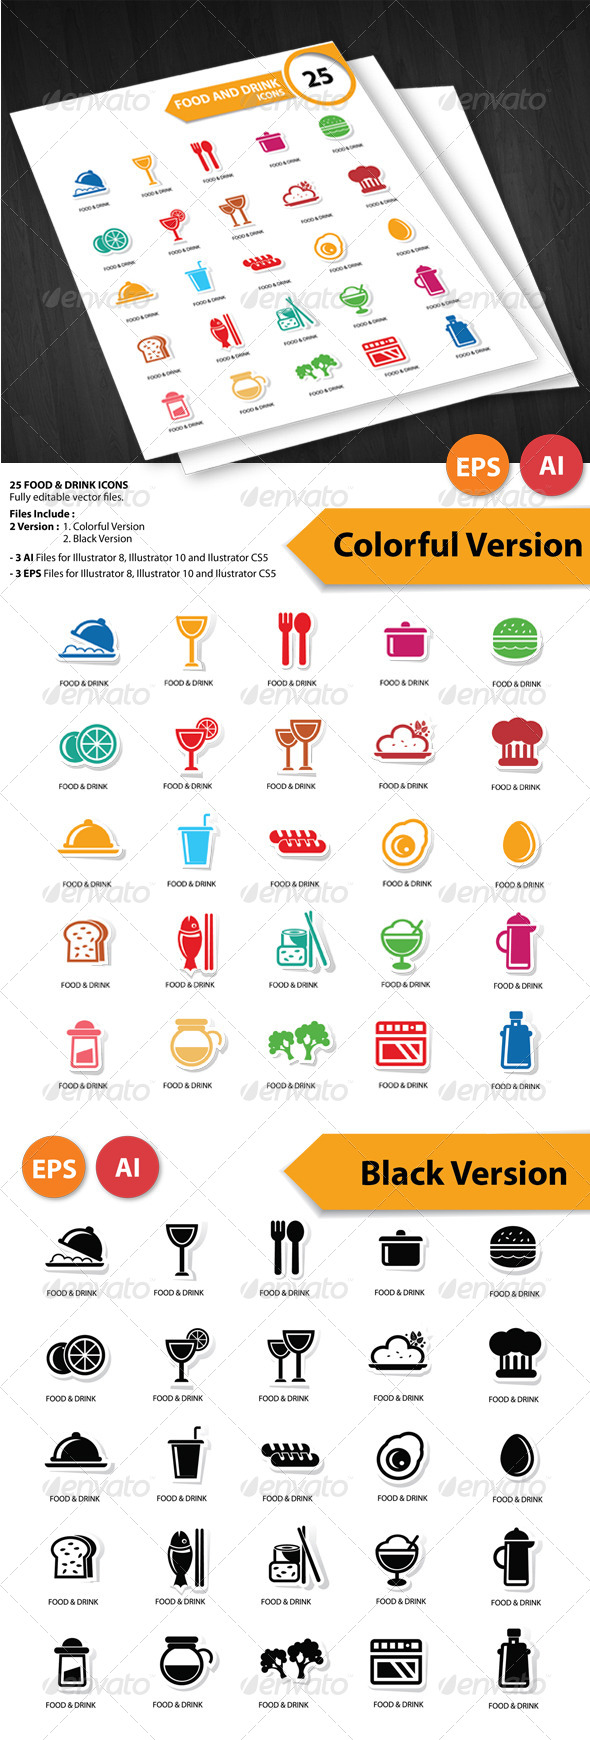 Drink Logos And Names Related Keywords & Suggestions - Drink Logos And ...